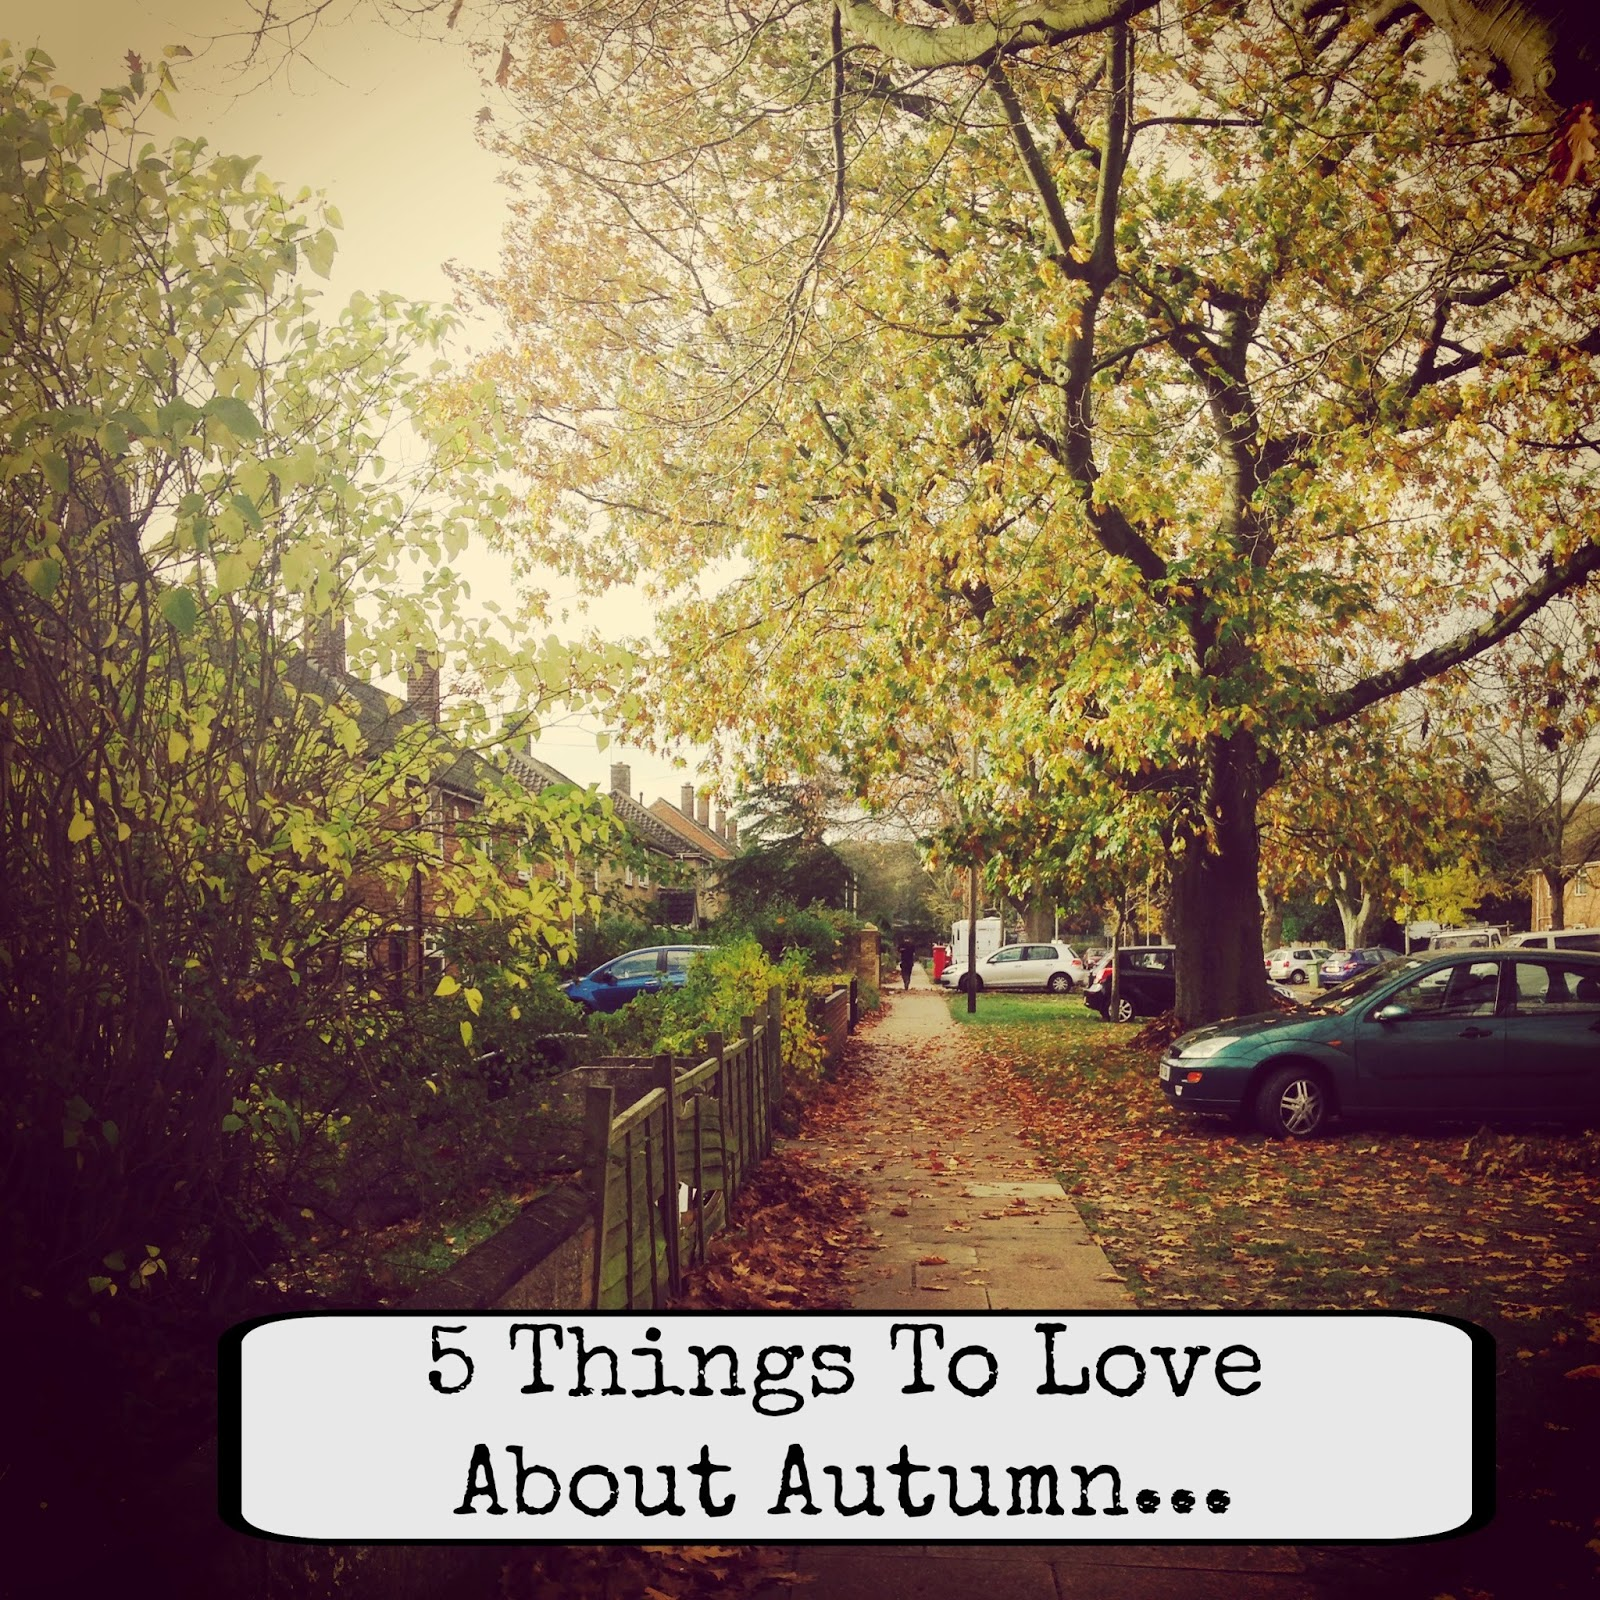 5 Things To Love About Autumn